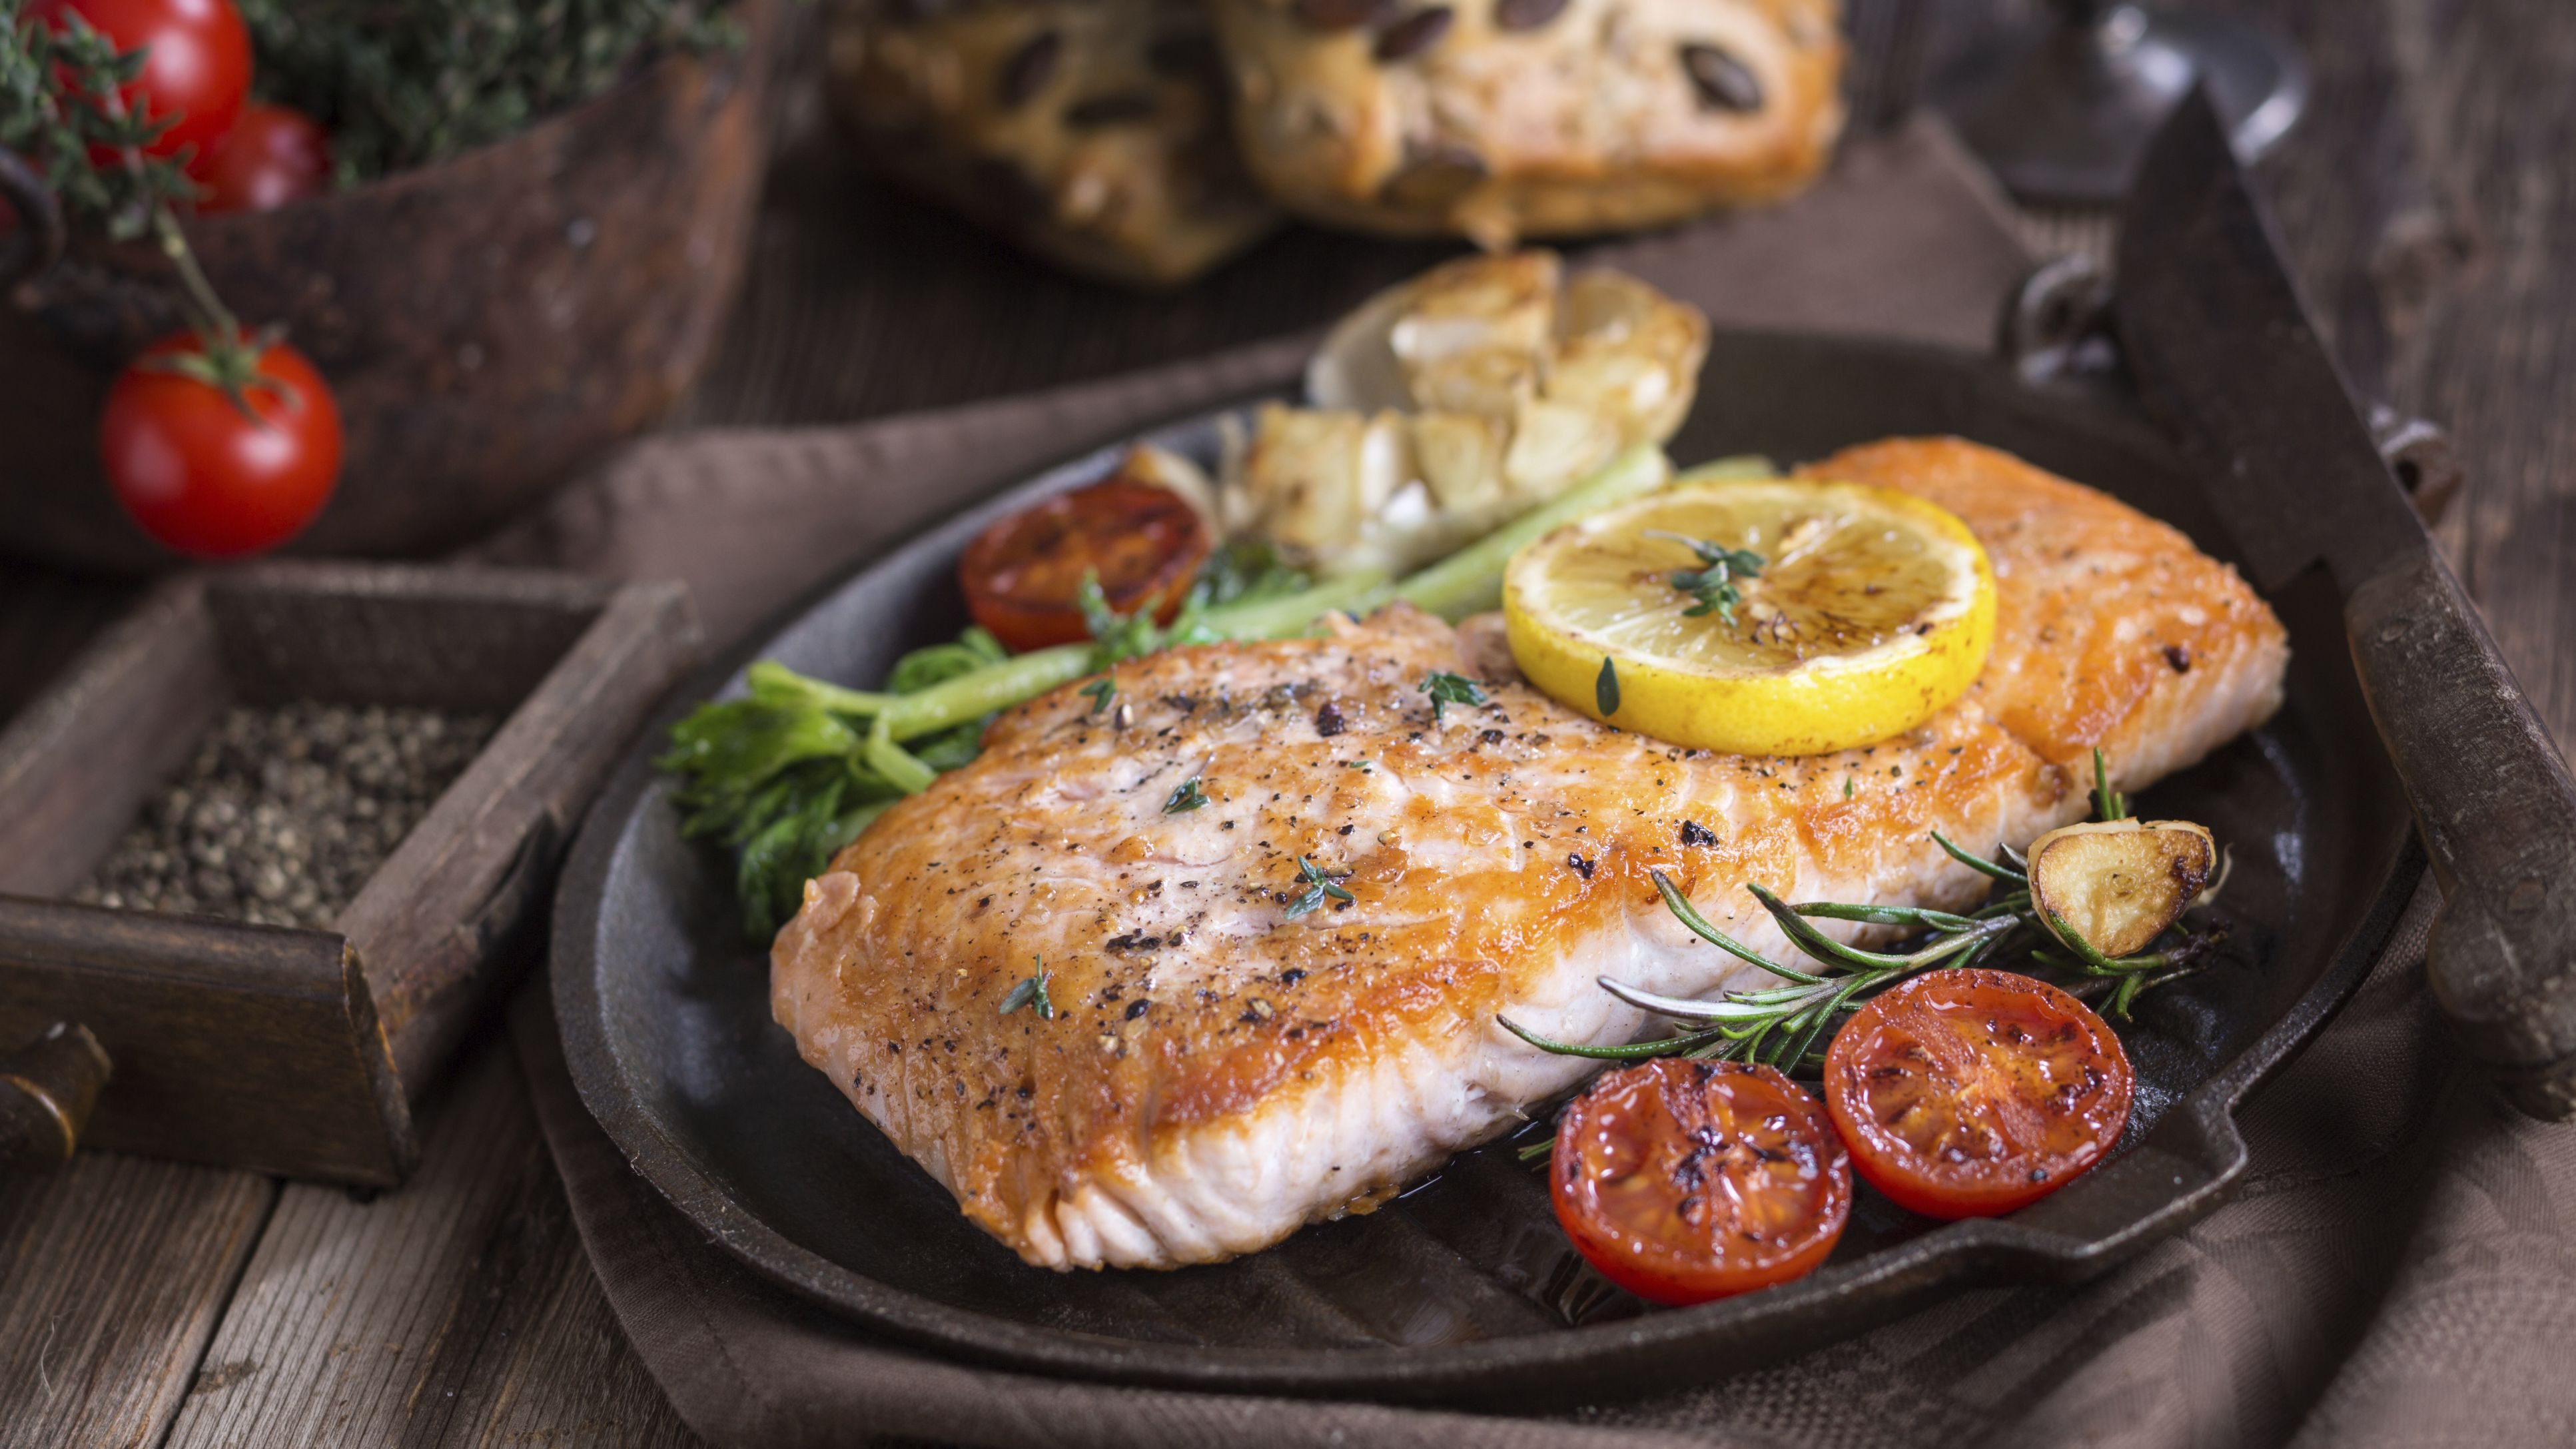 Is It Safe for Pregnant Women to Eat Fish?